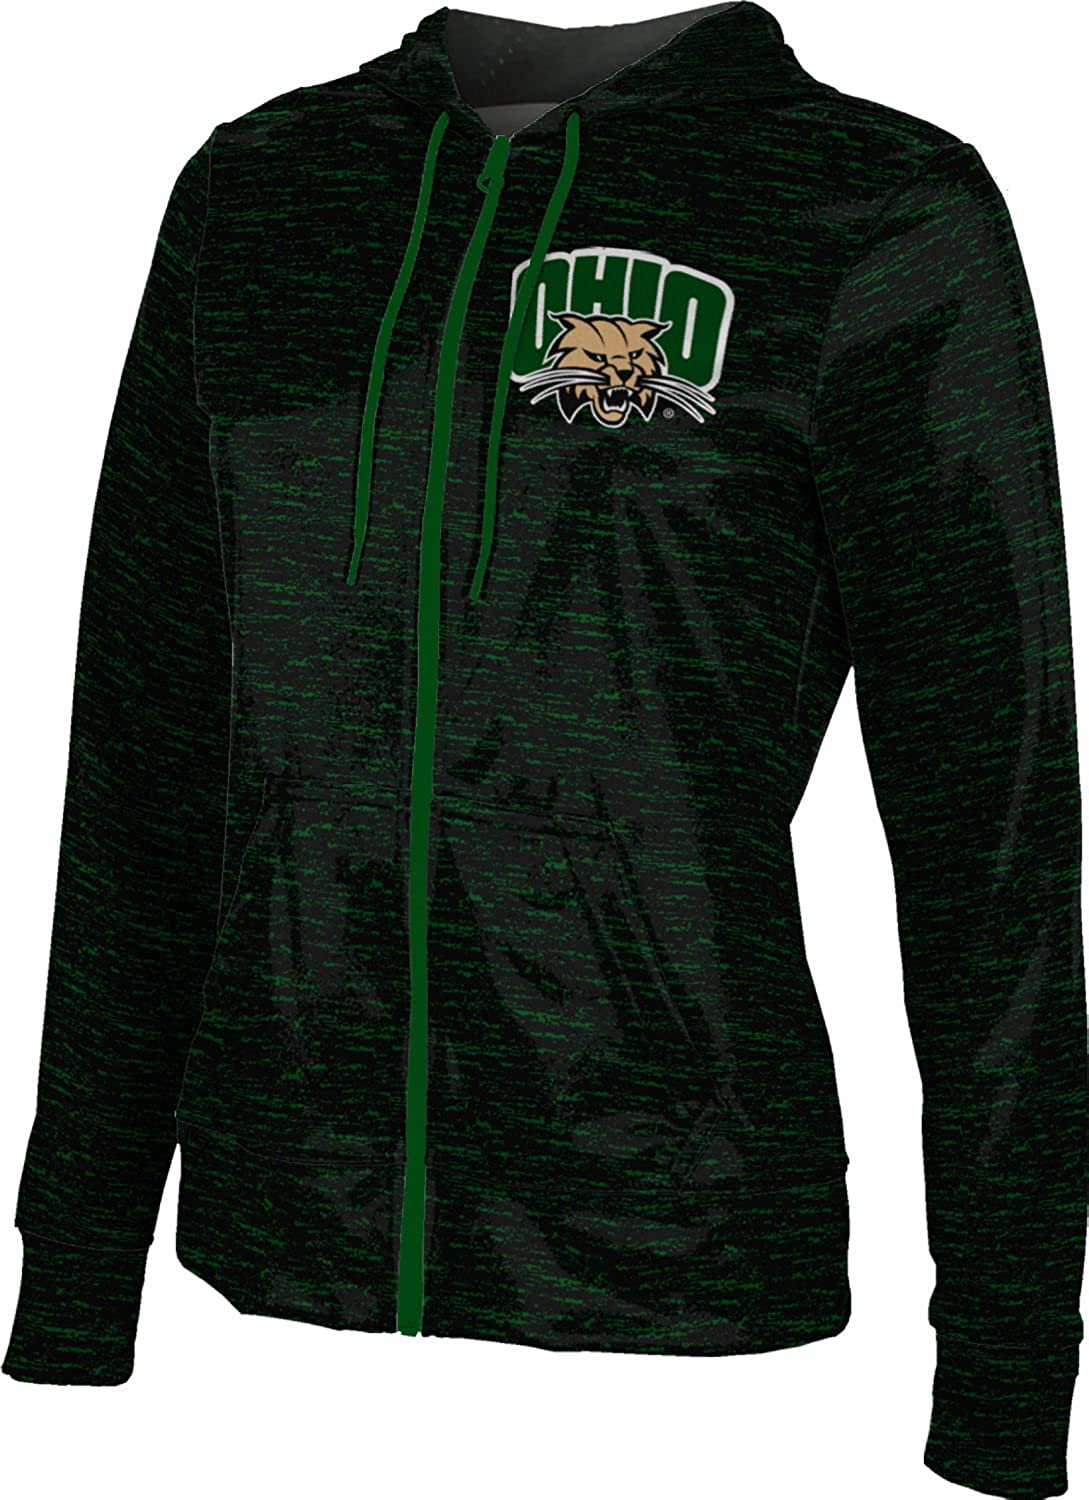 Ohio University Girls Zipper Hoodie Brushed School Spirit Sweatshirt